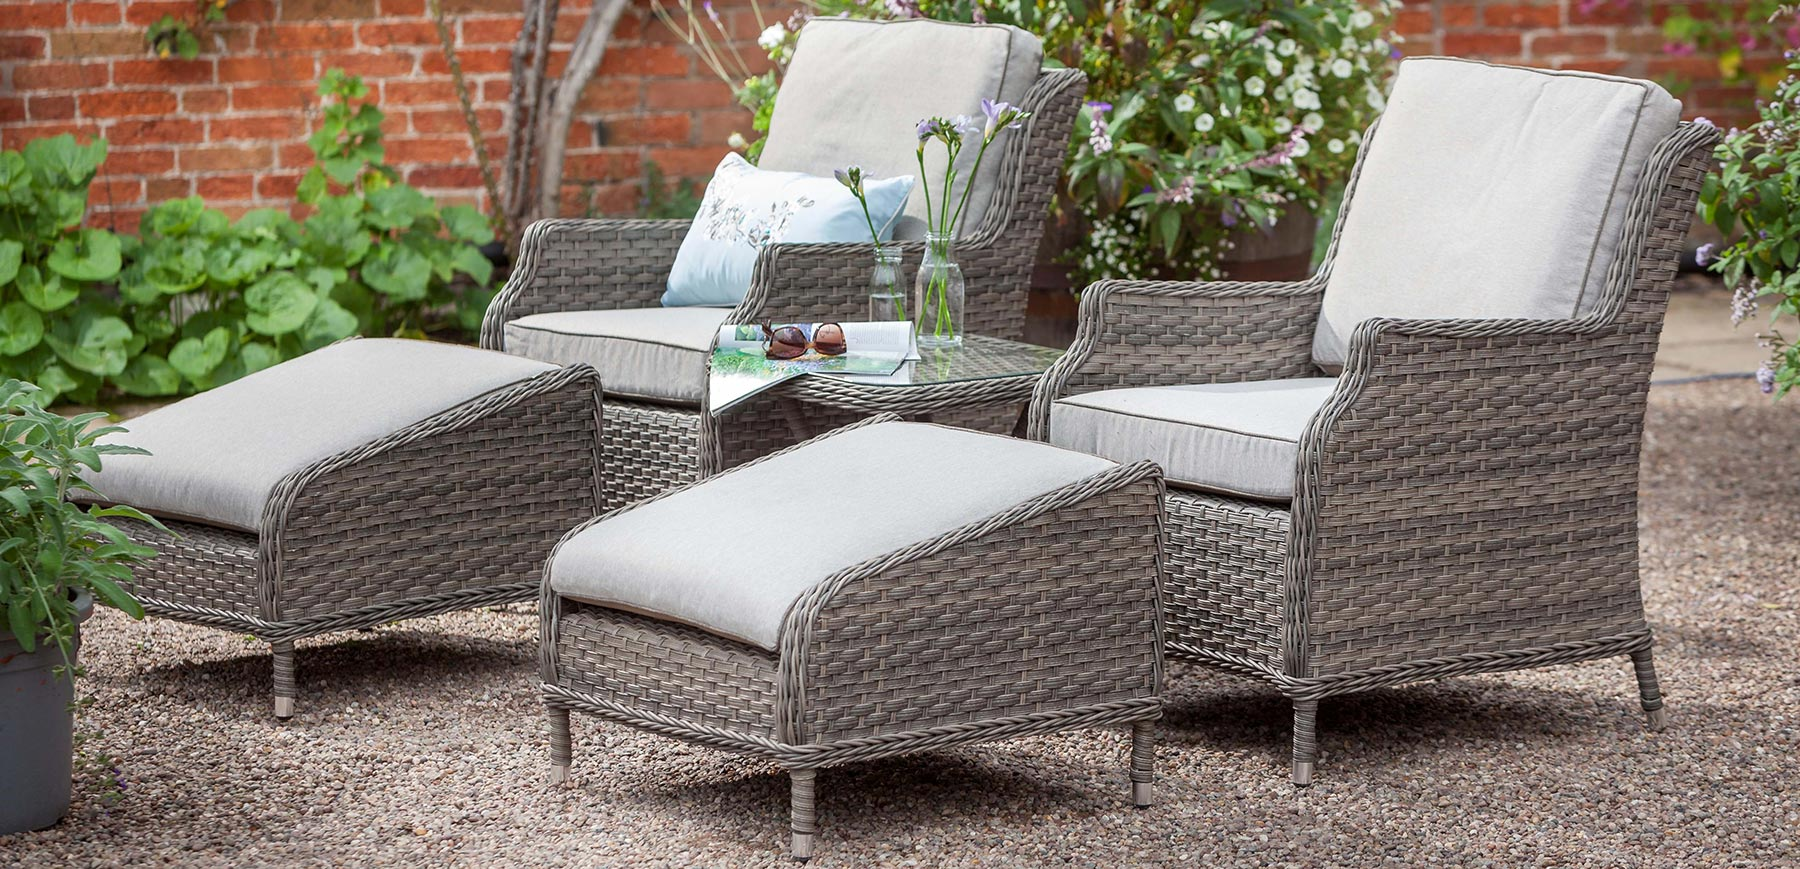 Top 10 new season garden furniture